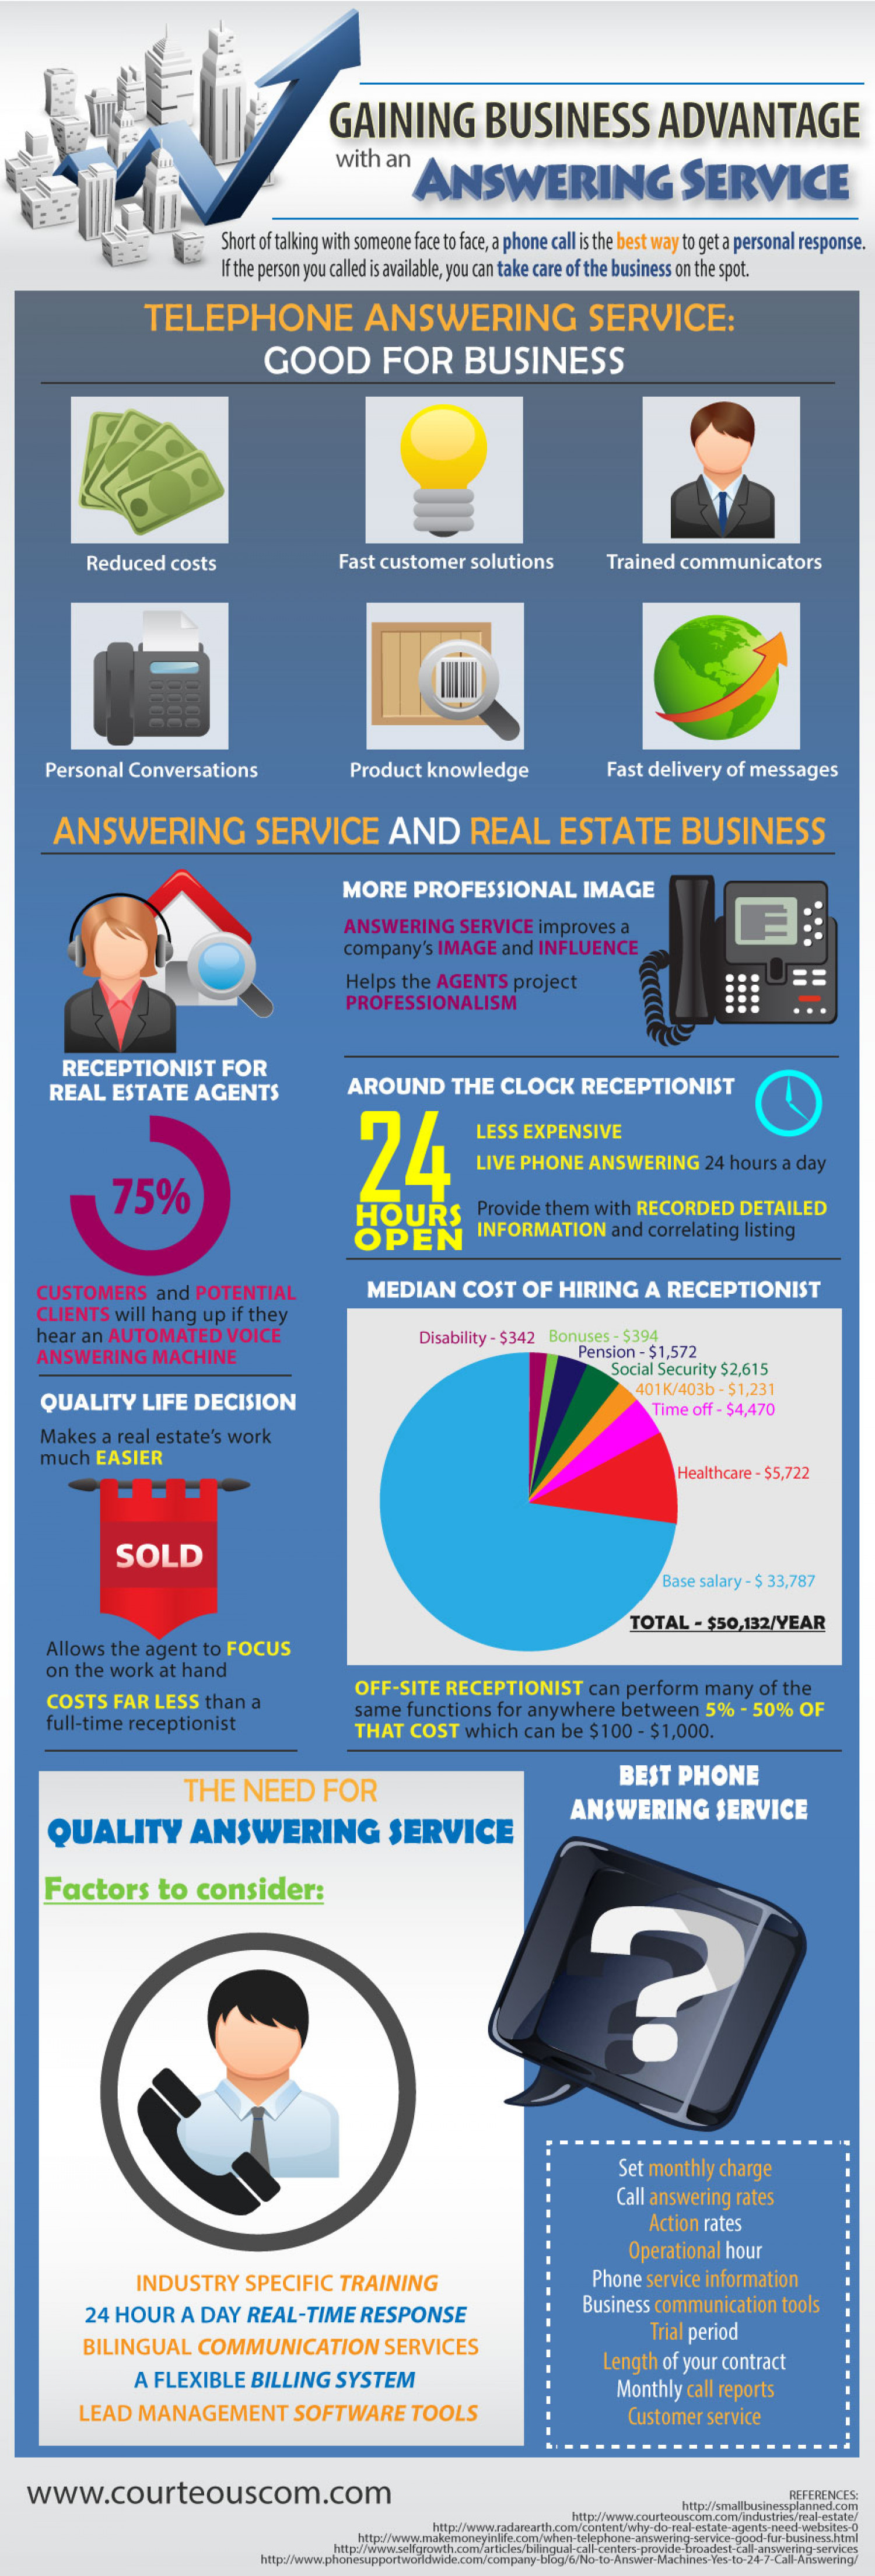 Gaining Business Advantage with an Answering Service Infographic